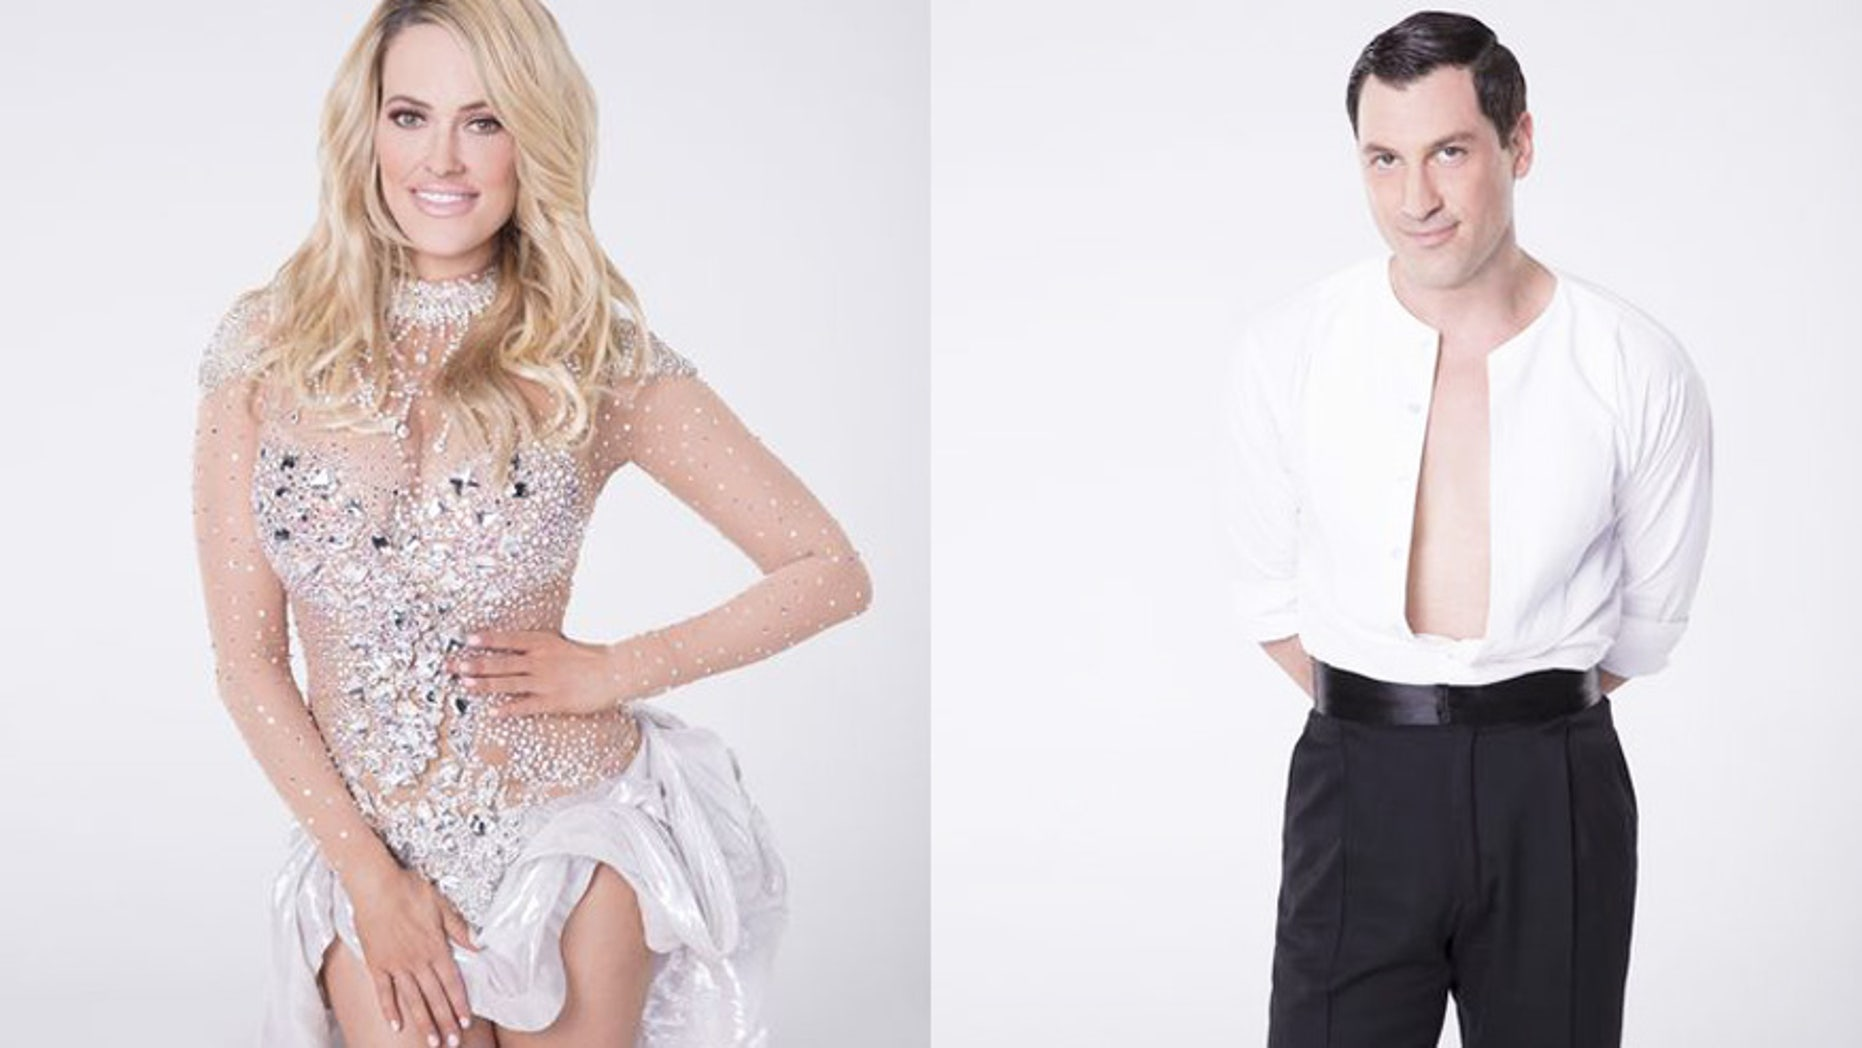 Peta Murgatroyd (left) and Maksim Chmerkovskiy (right) are safe after someone allegedly tried to break into their home.